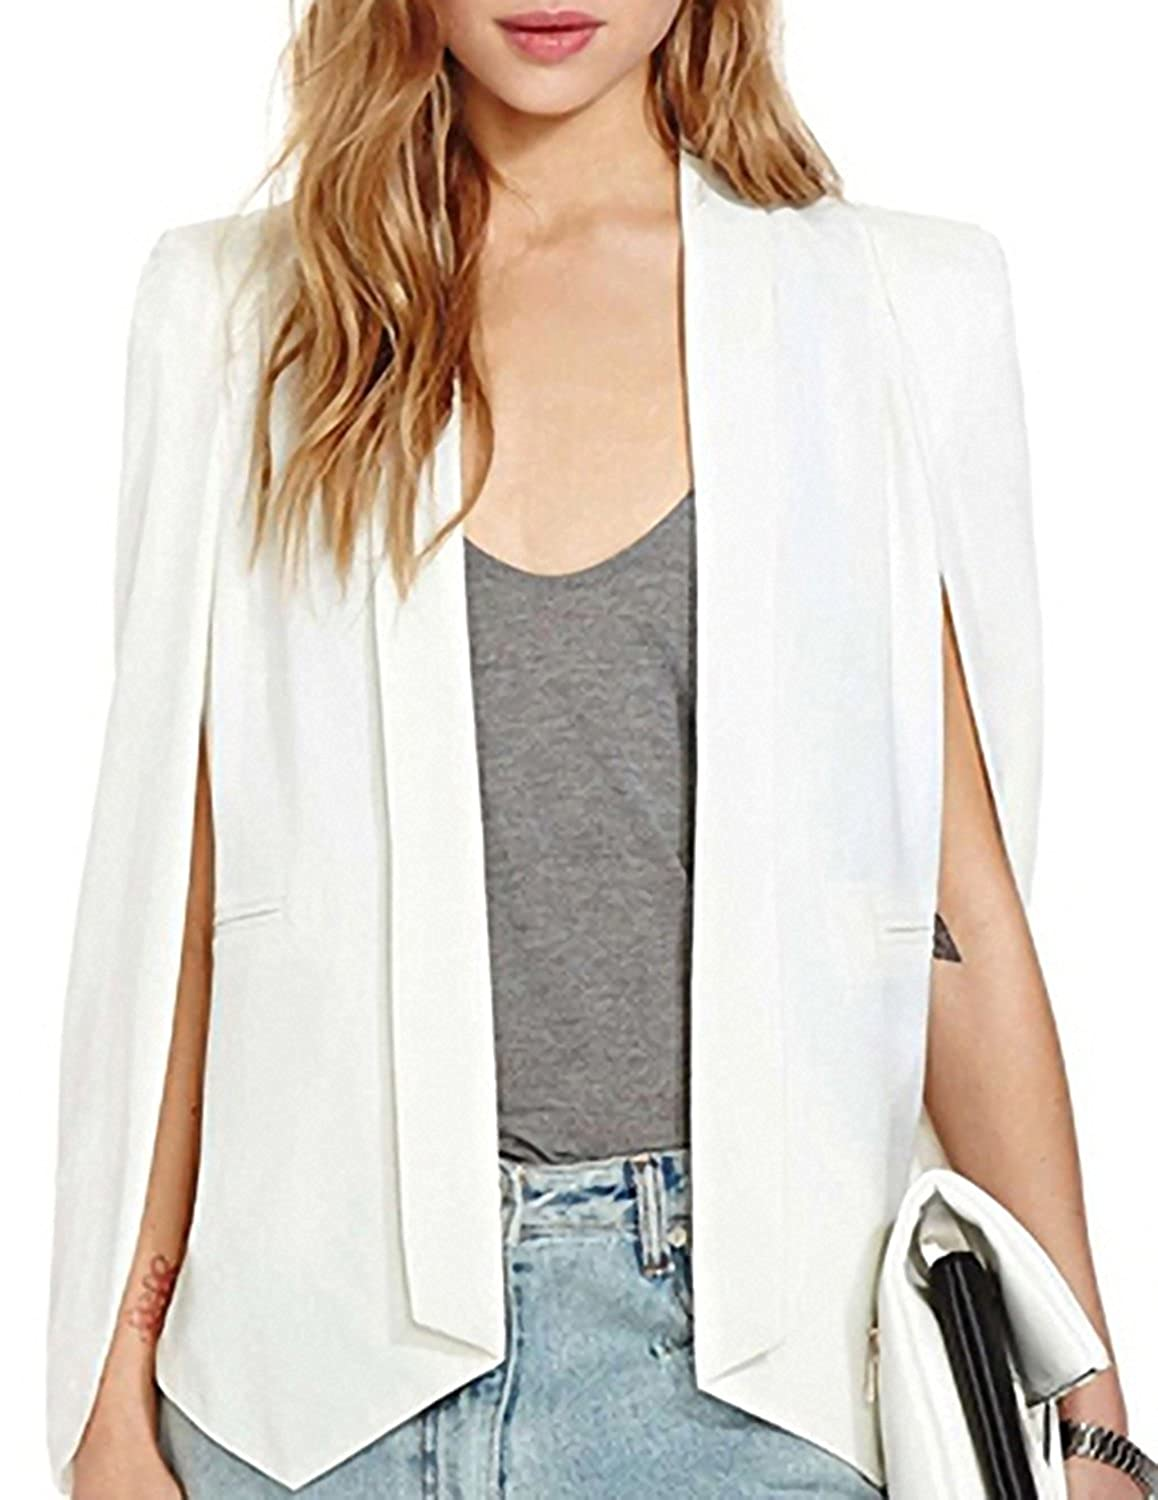 Hao Duo Yi Womens Cape Sim Fit Split Bussiness Blazer Jacket by Hao Duo Yi